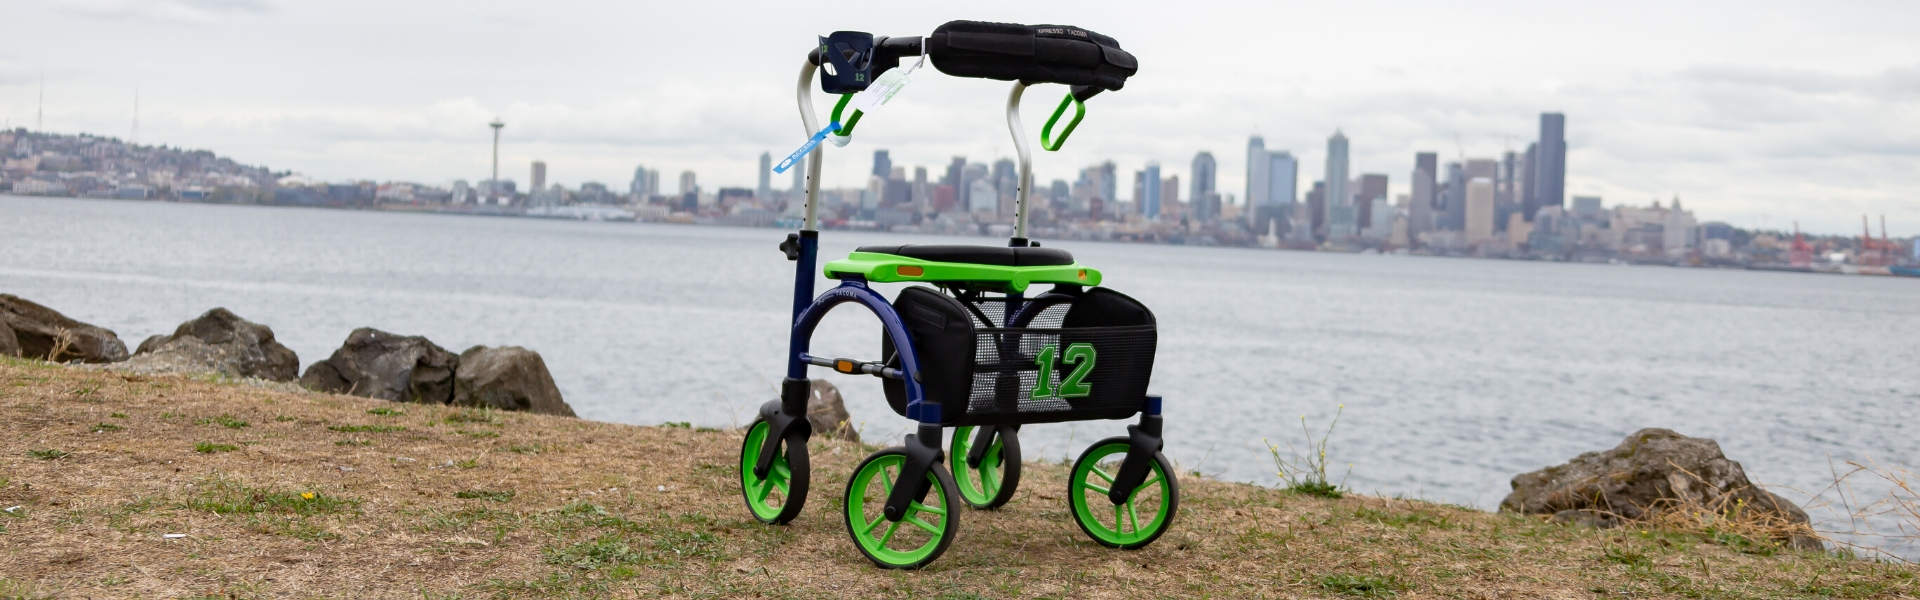 Medical equipment rentals in Seattle